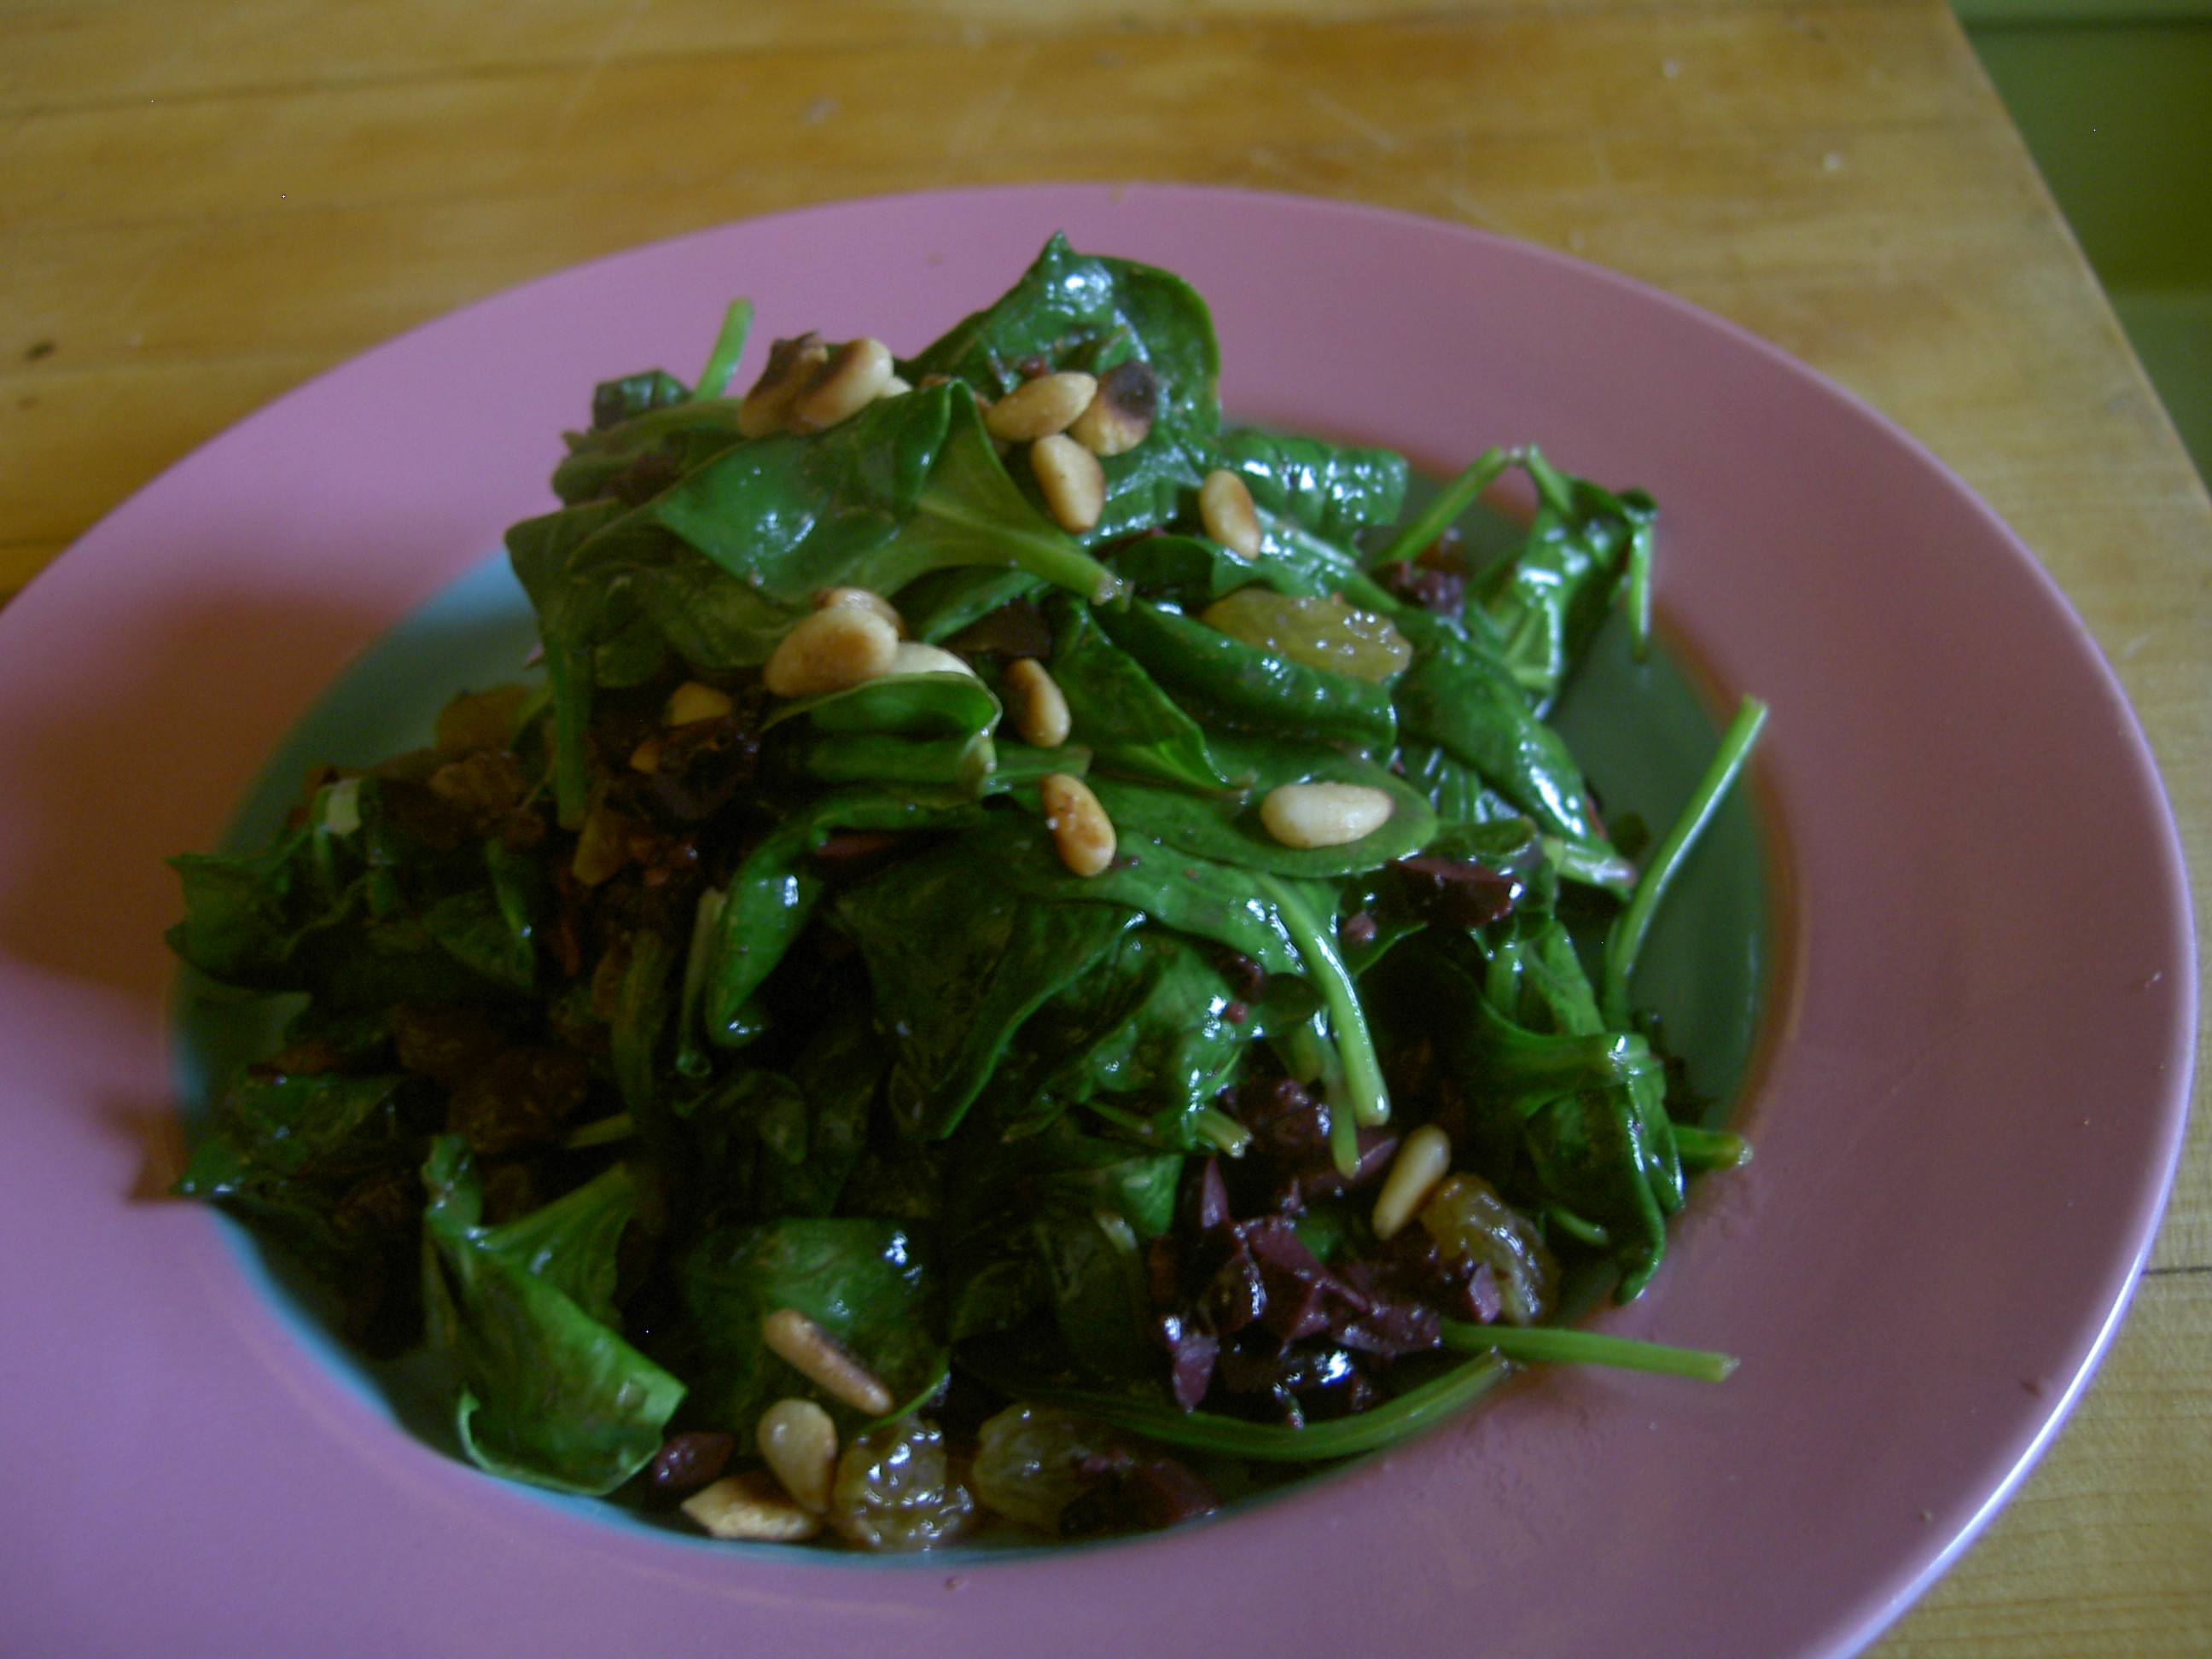 Sauteed Spinach with Kalamata Olives and Raisins